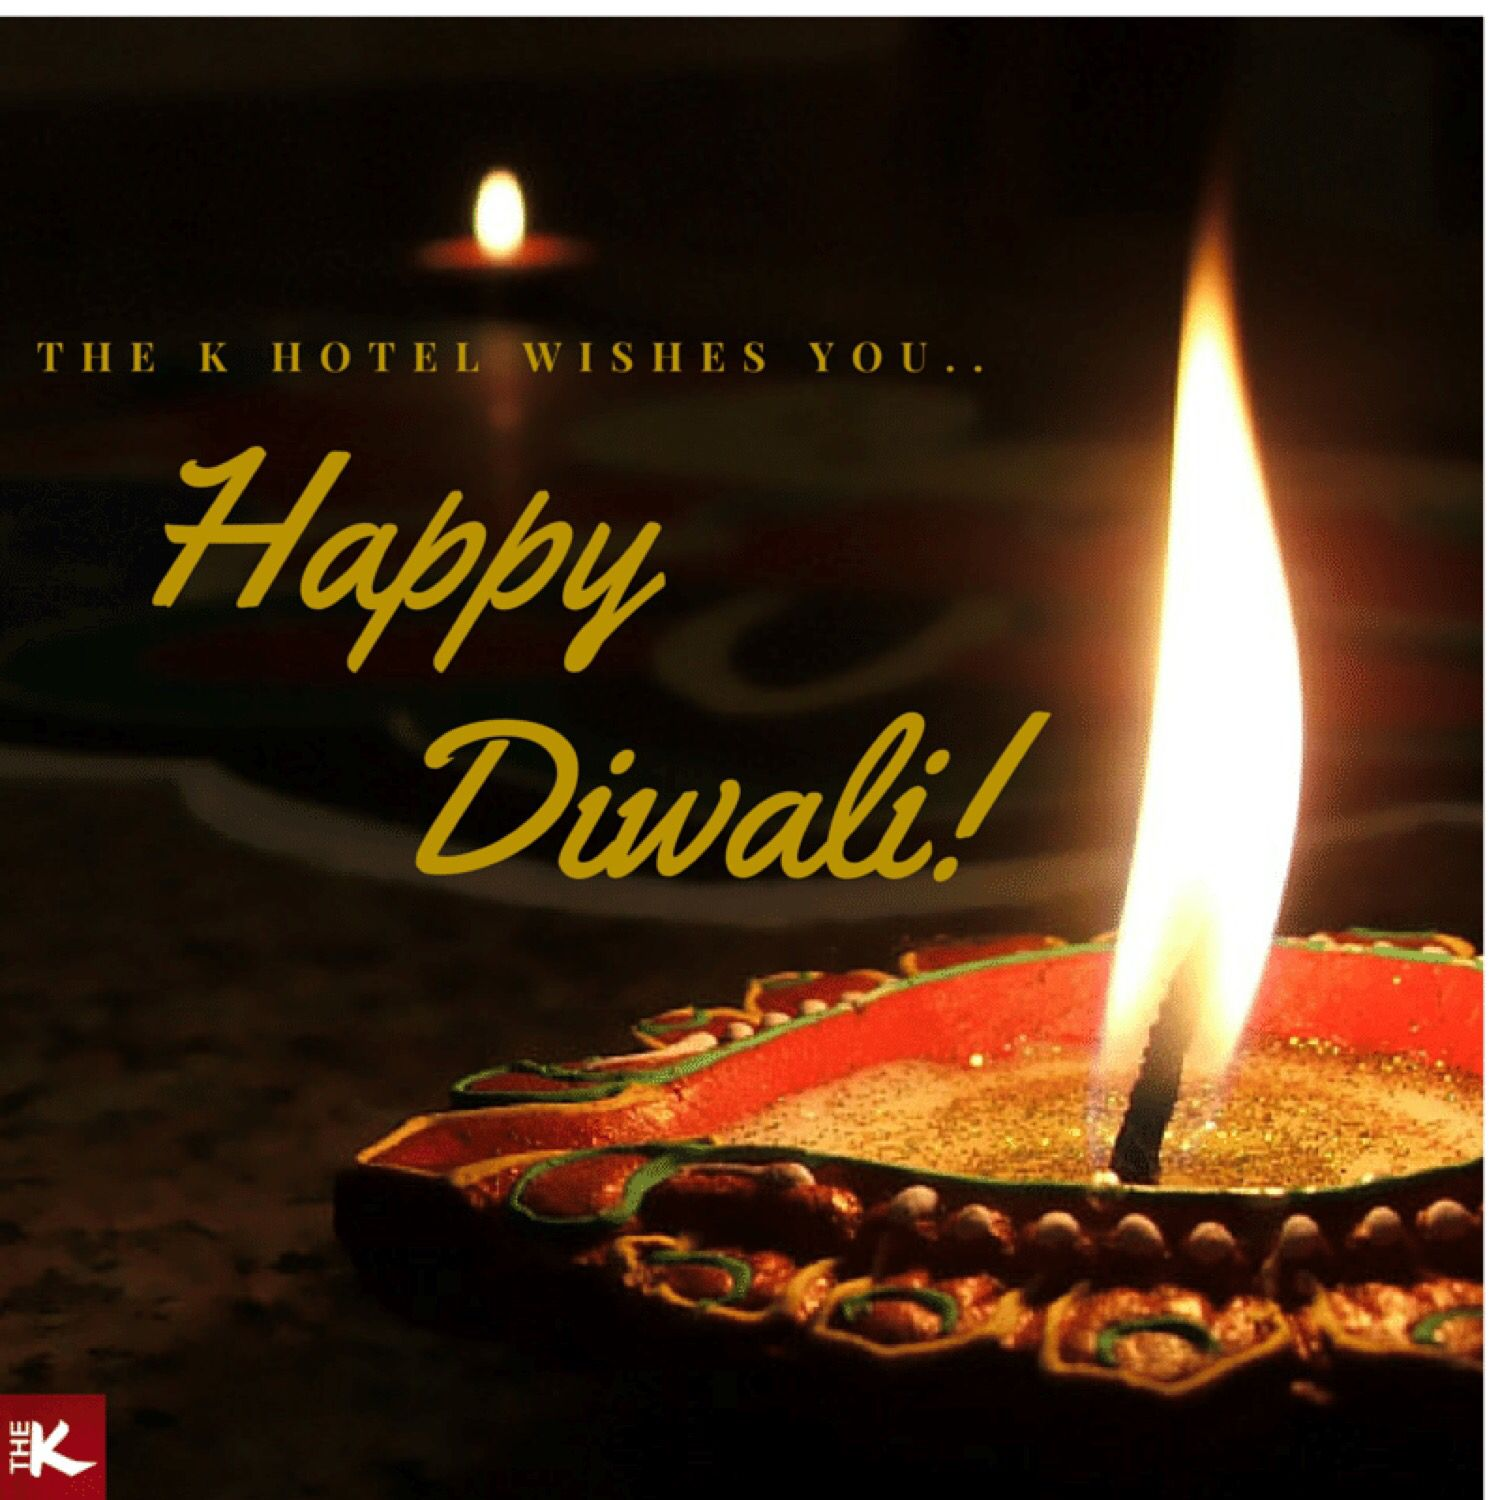 For this, is a special time when family & friends get together. Celebrate this festive season with us at #Thekhotel. Happy Deepavali!